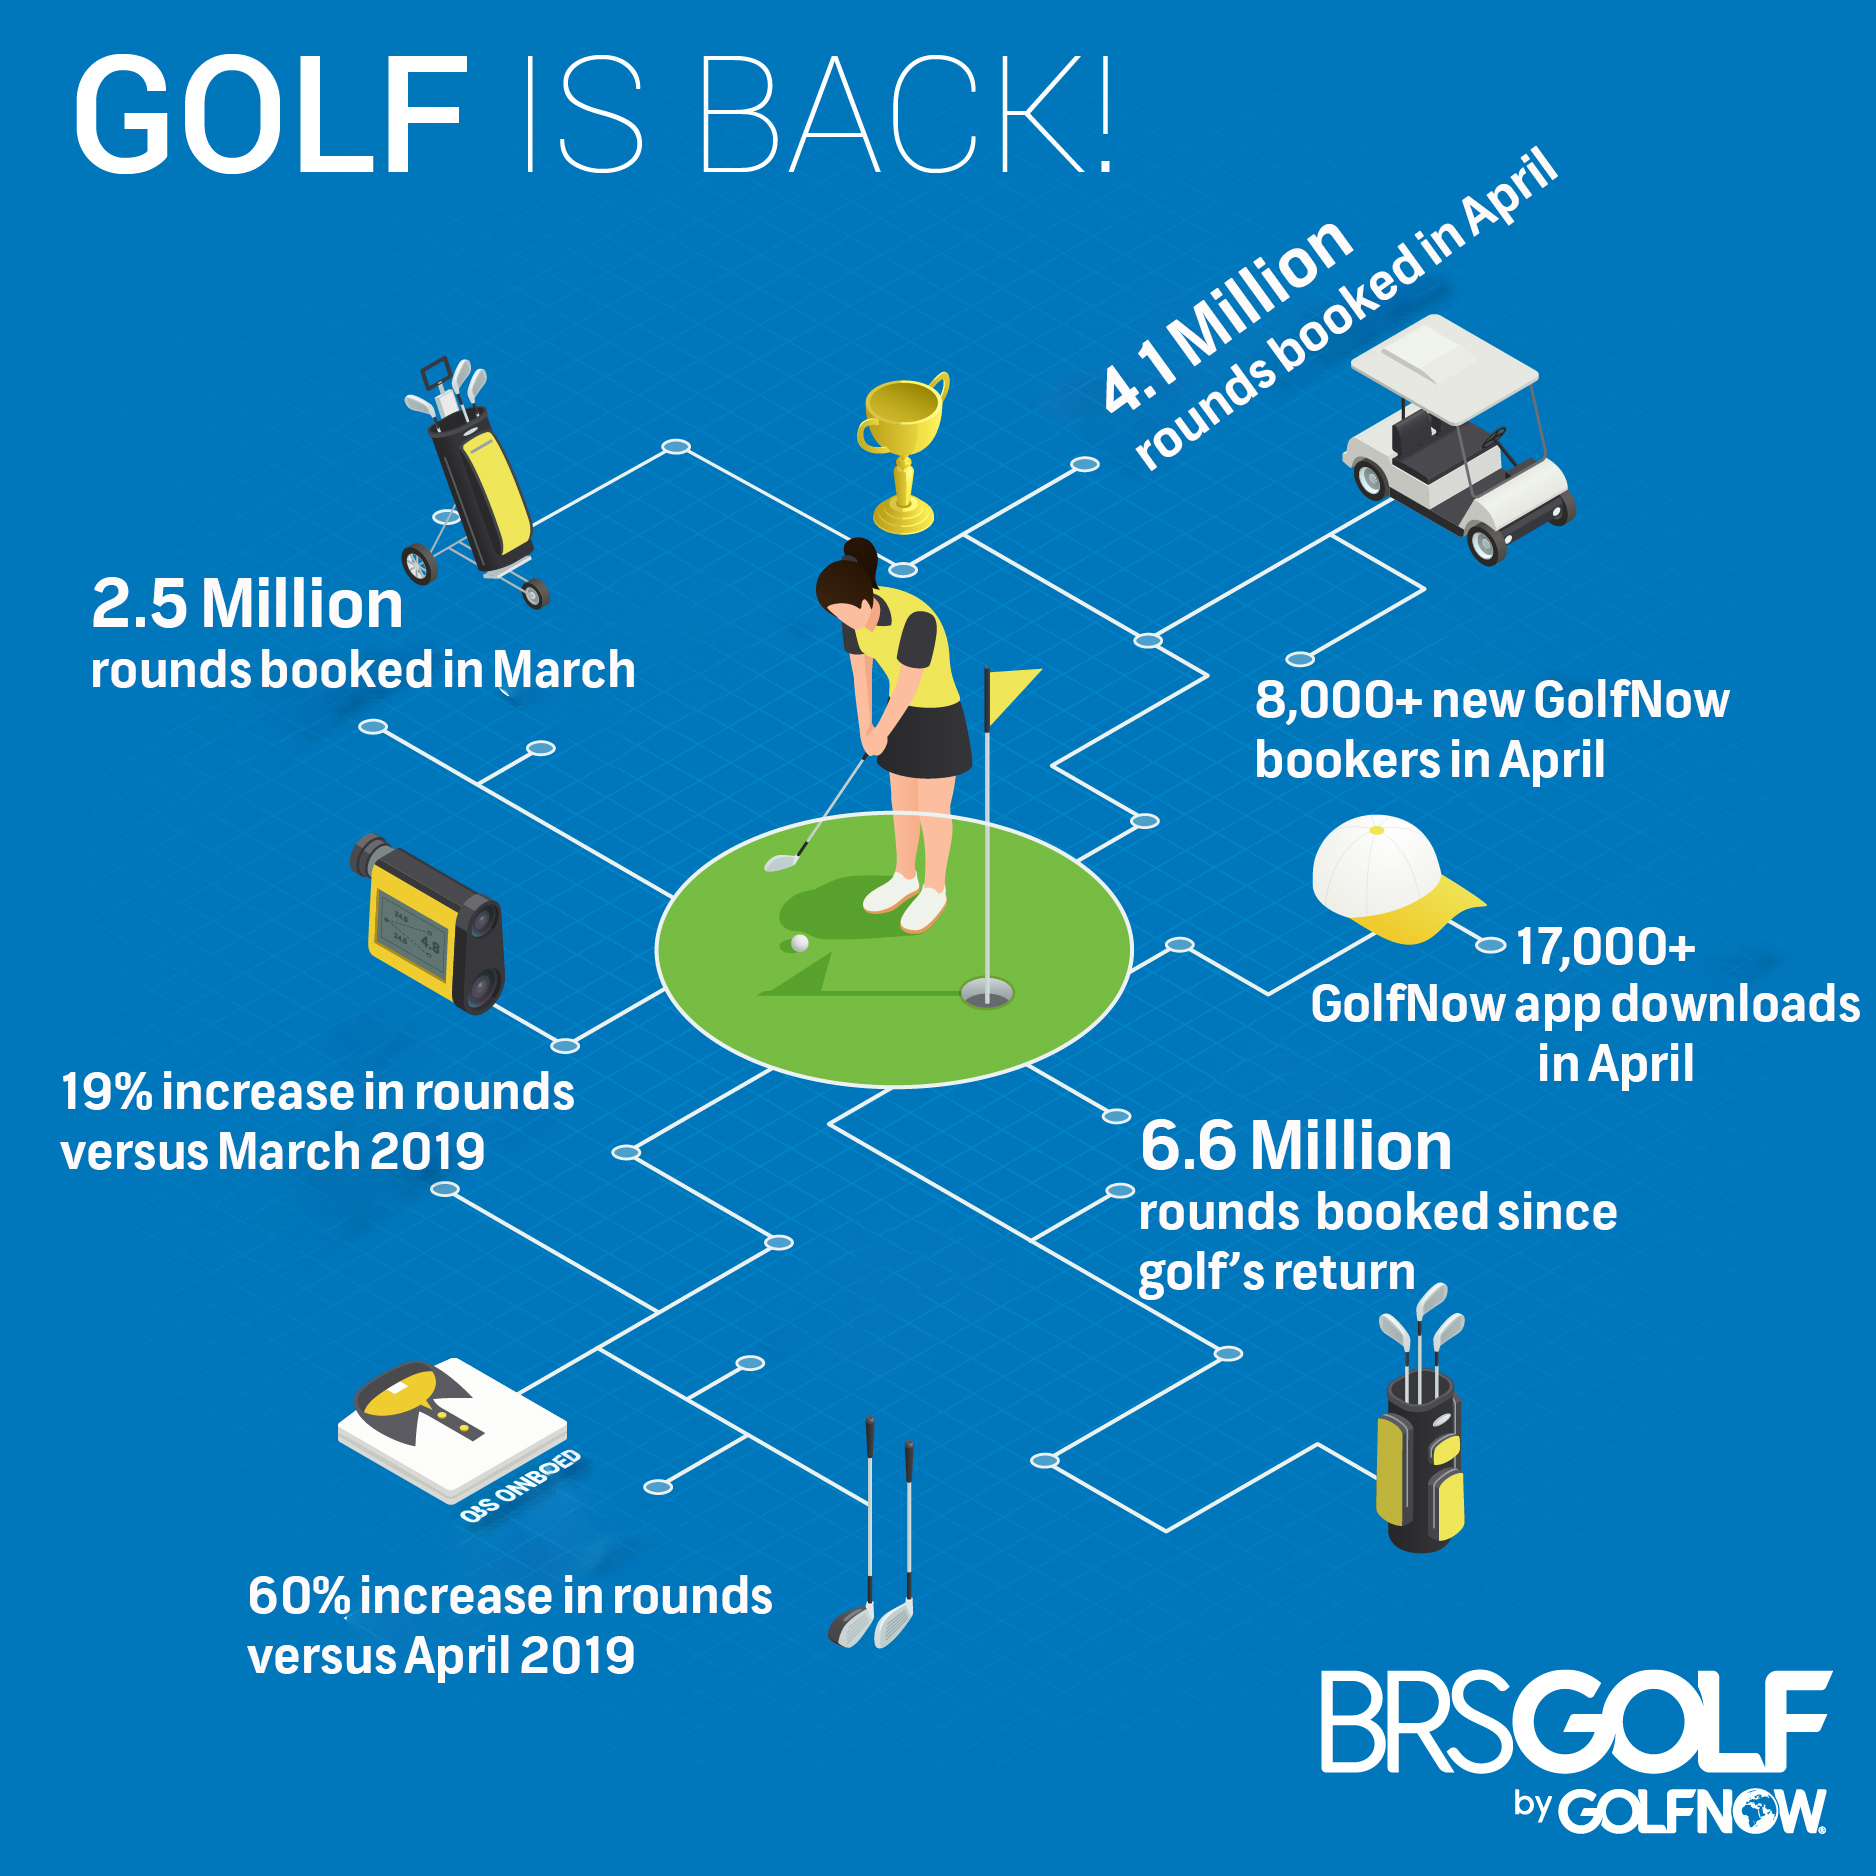 Golf is back! And BRS Golf is here to help